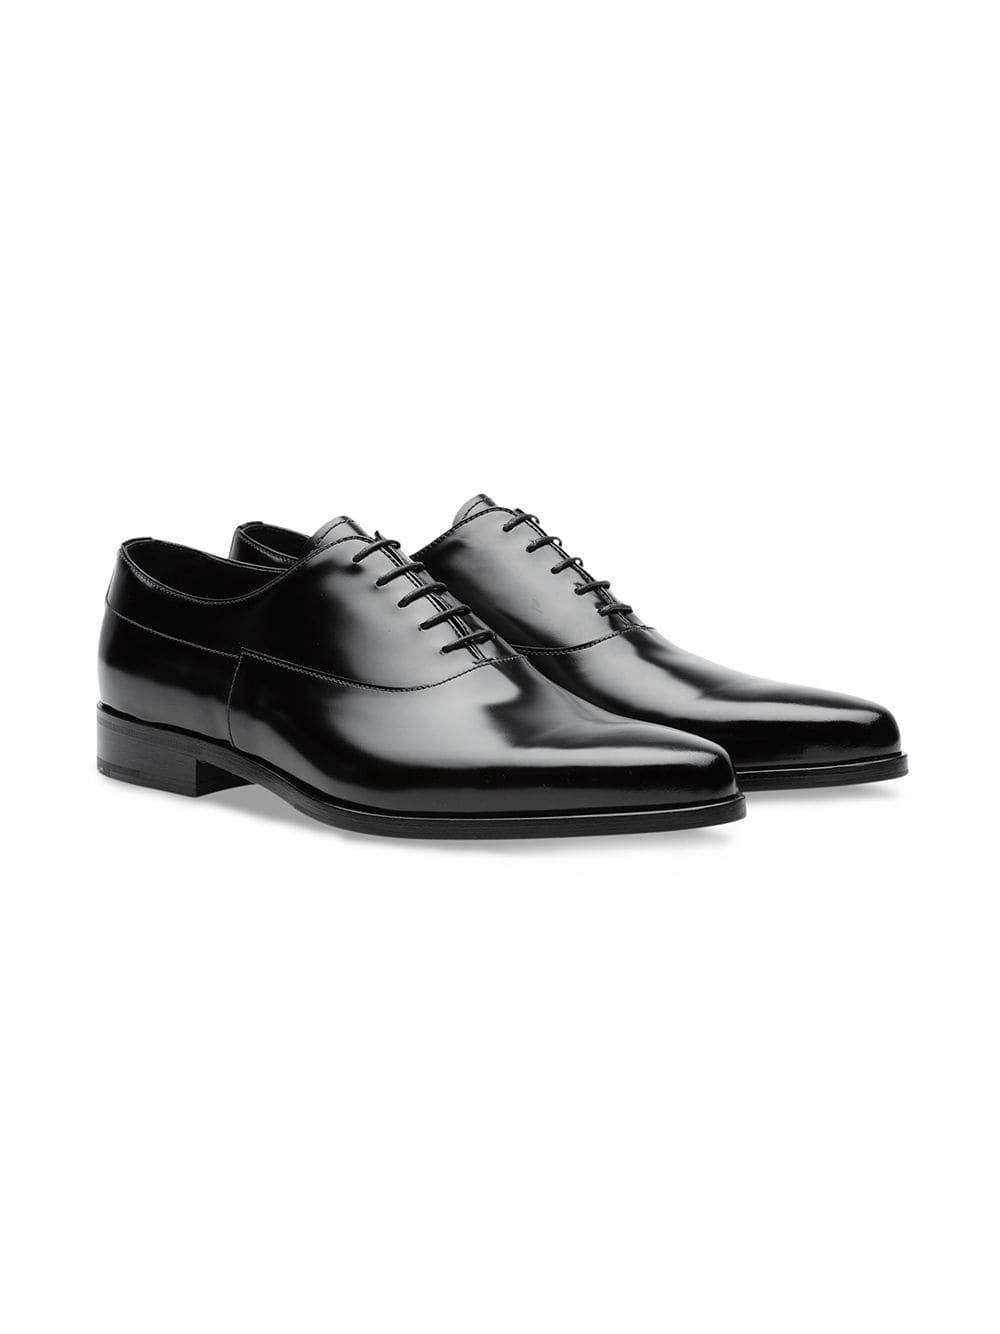 8acd6023221a Prada Classic Oxford Shoes in Black for Men - Lyst